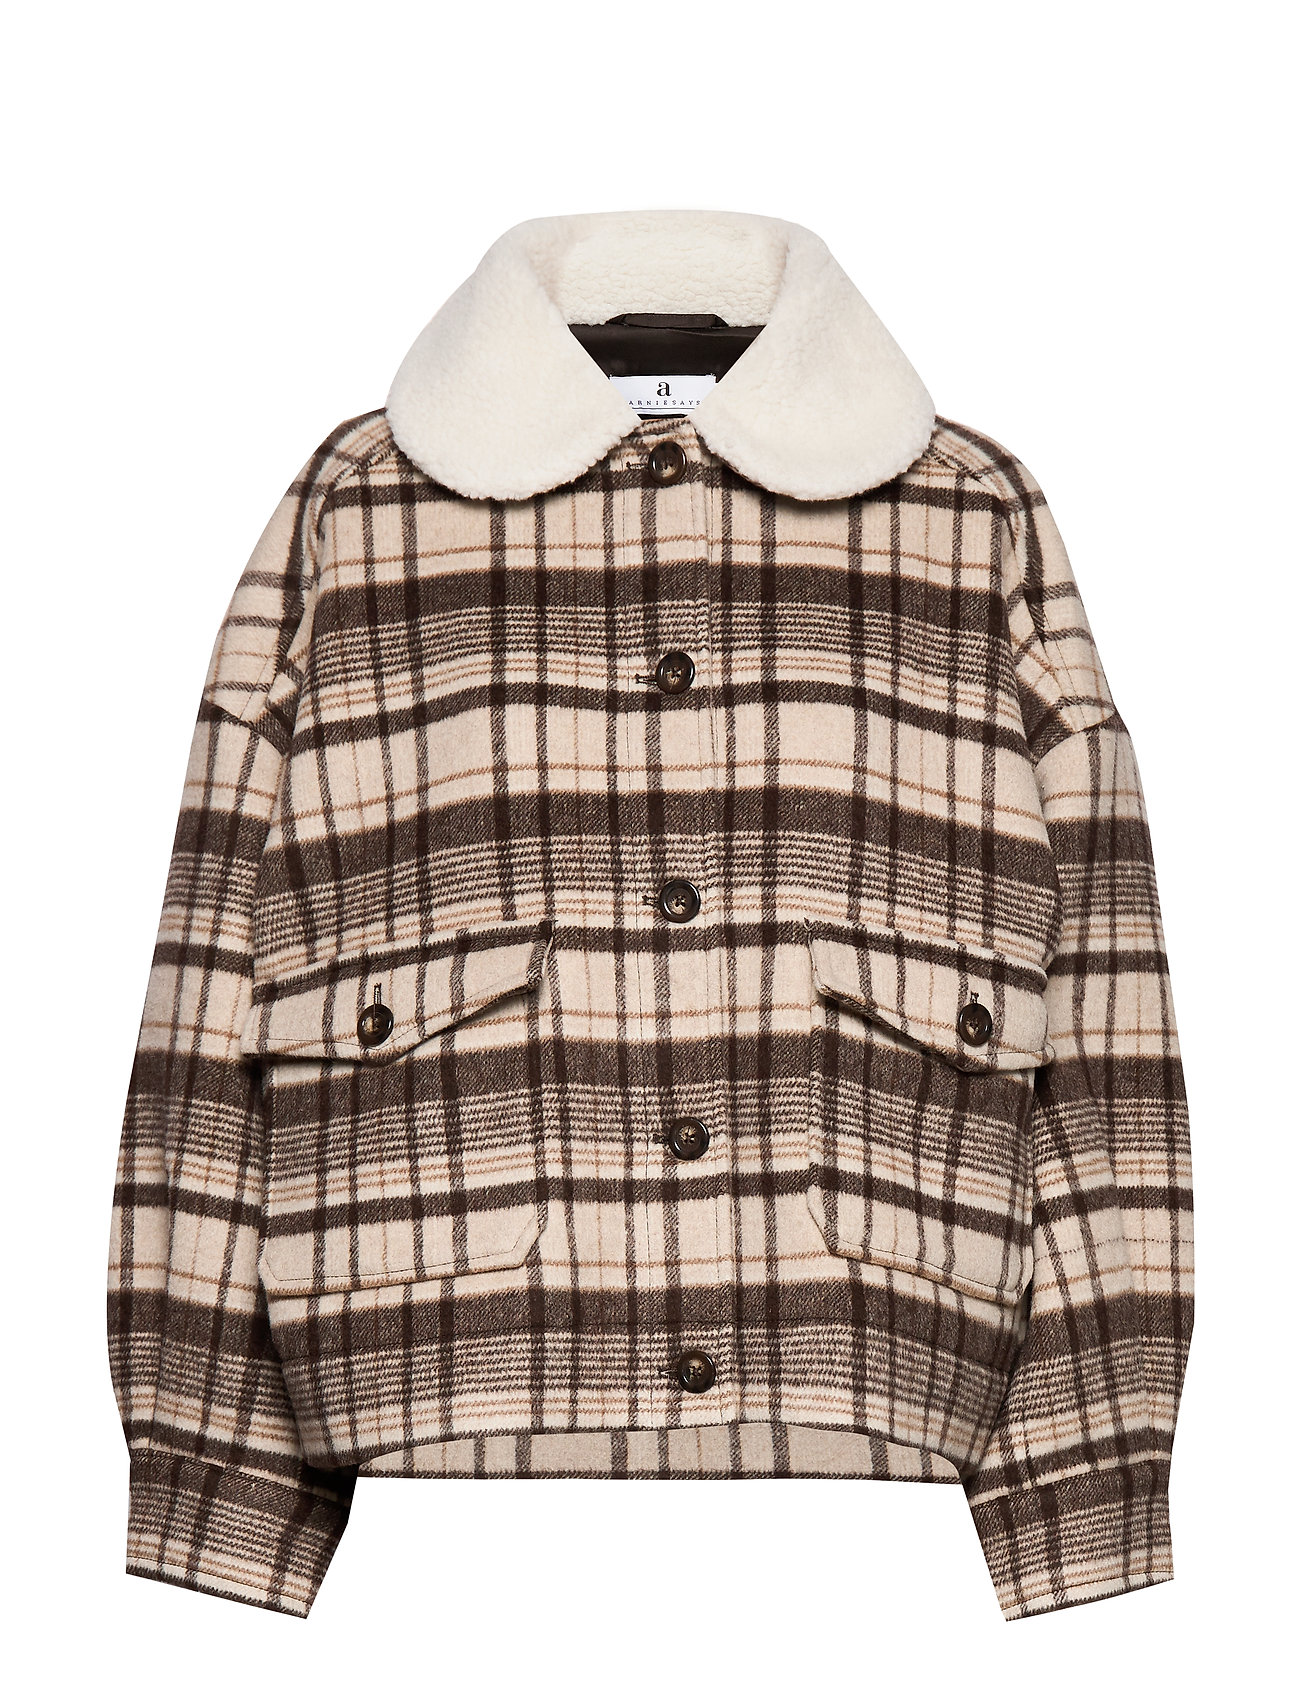 Arnie Says Austen Plaids - BEIGE/COFFEE COMBO